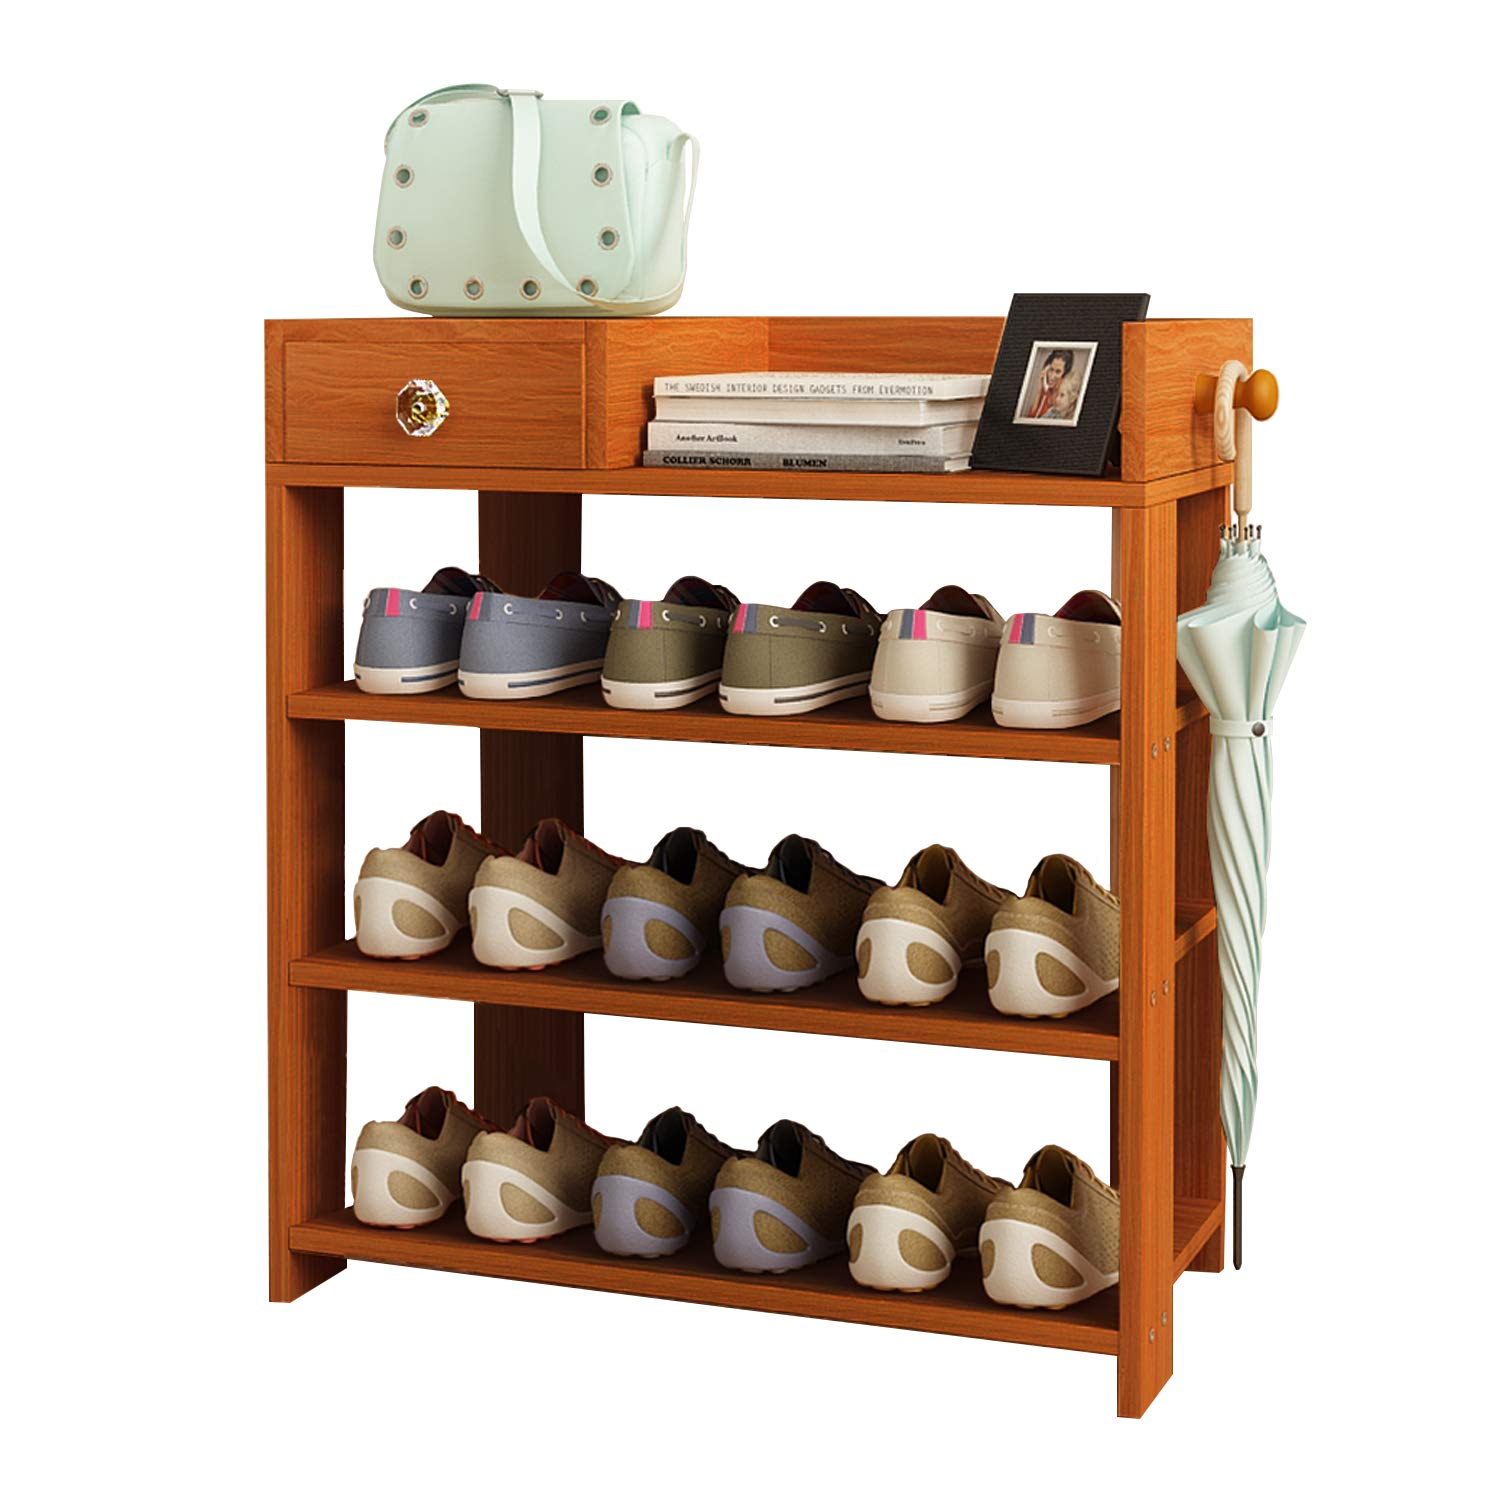 Jerry & Maggie - 3 Tier Wood MDF Board Shoe Rack Shelf with One Drawer Clothes Rack Shoe Storage Shelves Free Standing Flat Racks Classic Style - Multi Function Shelf Organizer - Natural Wood Tone